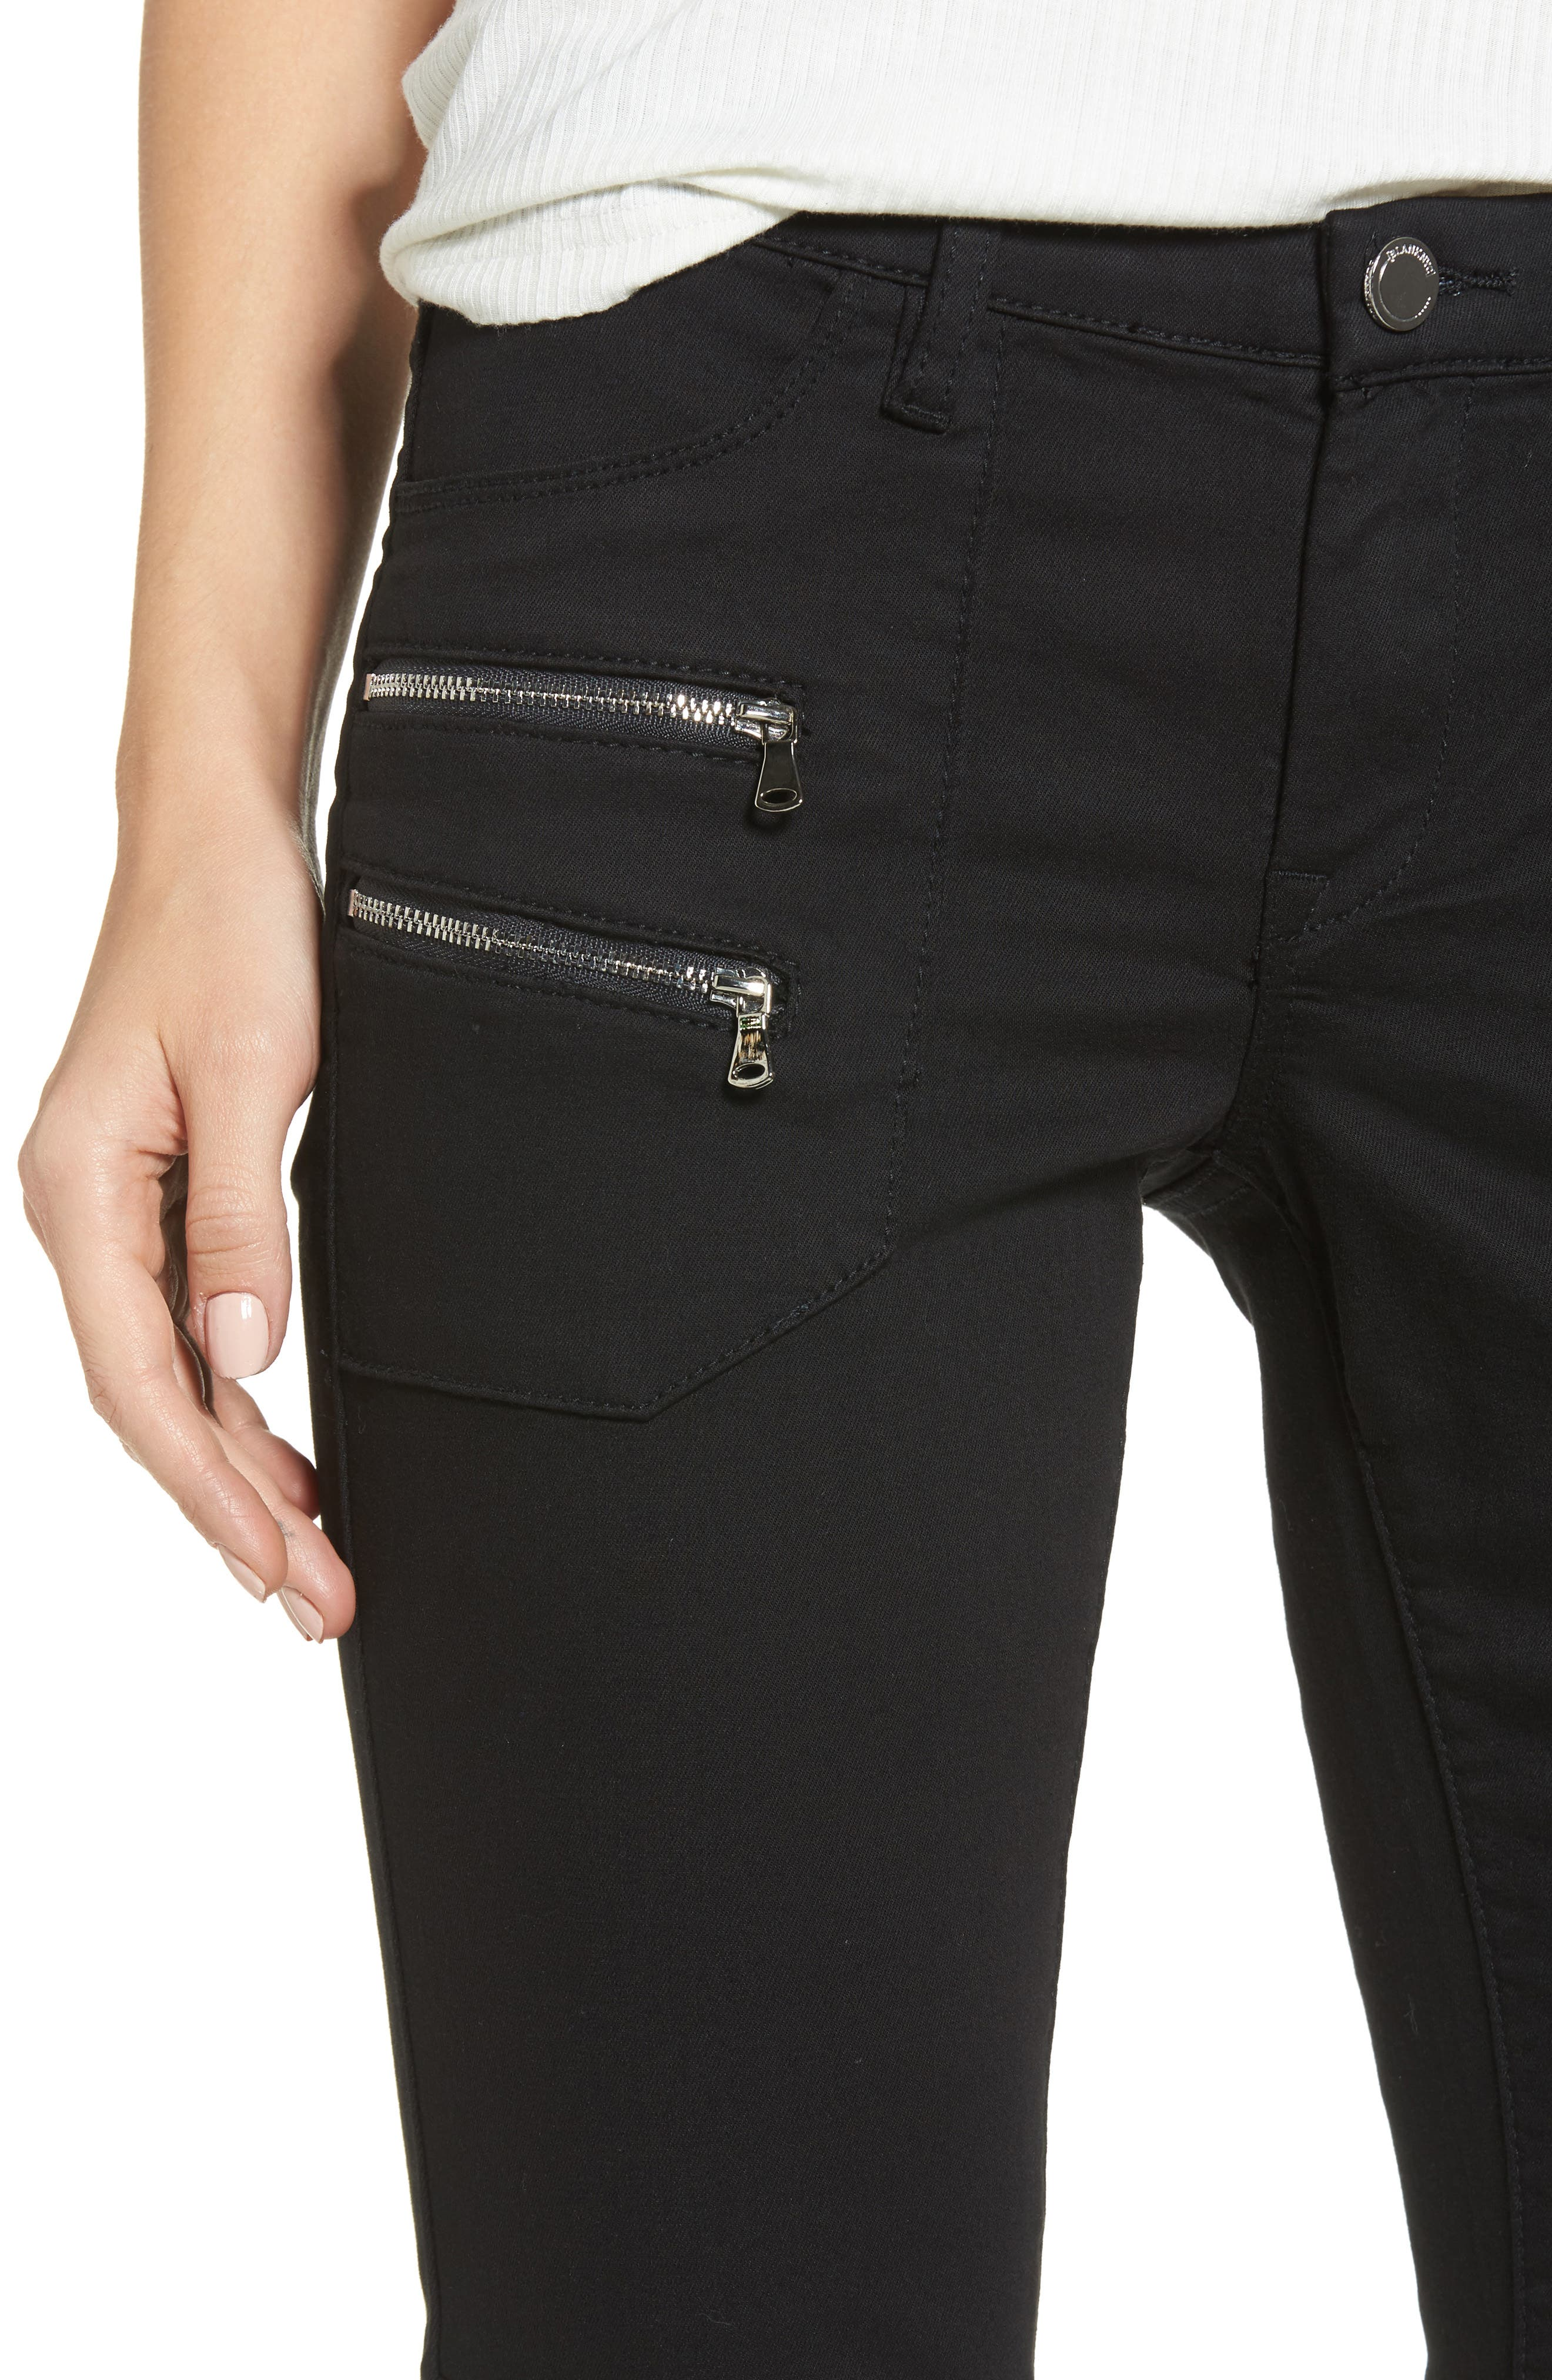 Private Party Skinny Jeans,                             Alternate thumbnail 4, color,                             001